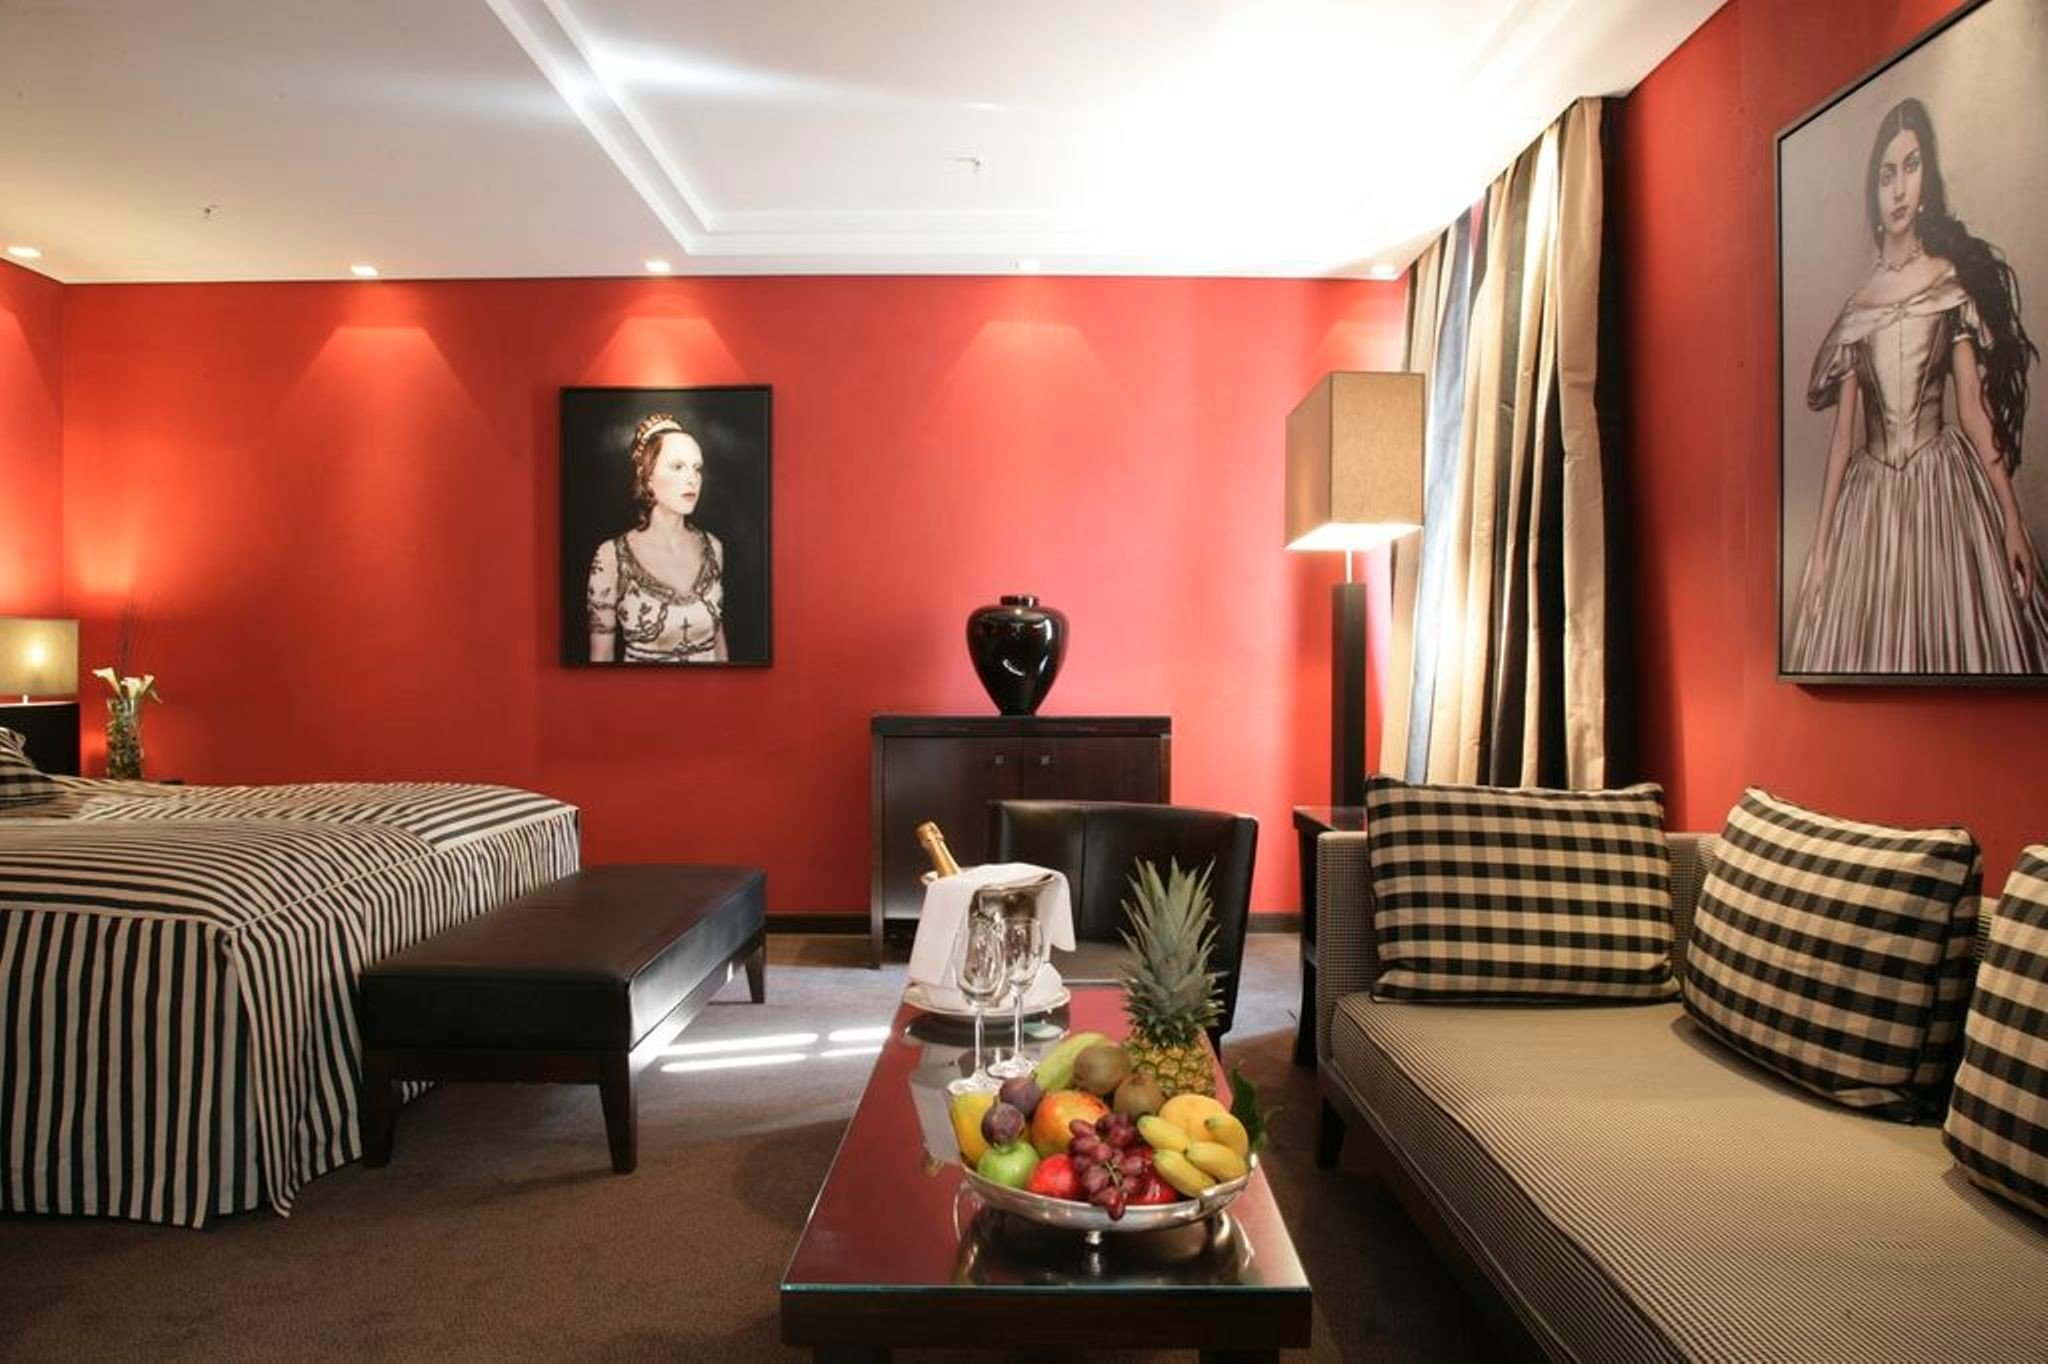 europe Germany Hotels Munich indoor wall table room floor Living interior design living room ceiling Suite red interior designer apartment hotel furniture decorated several